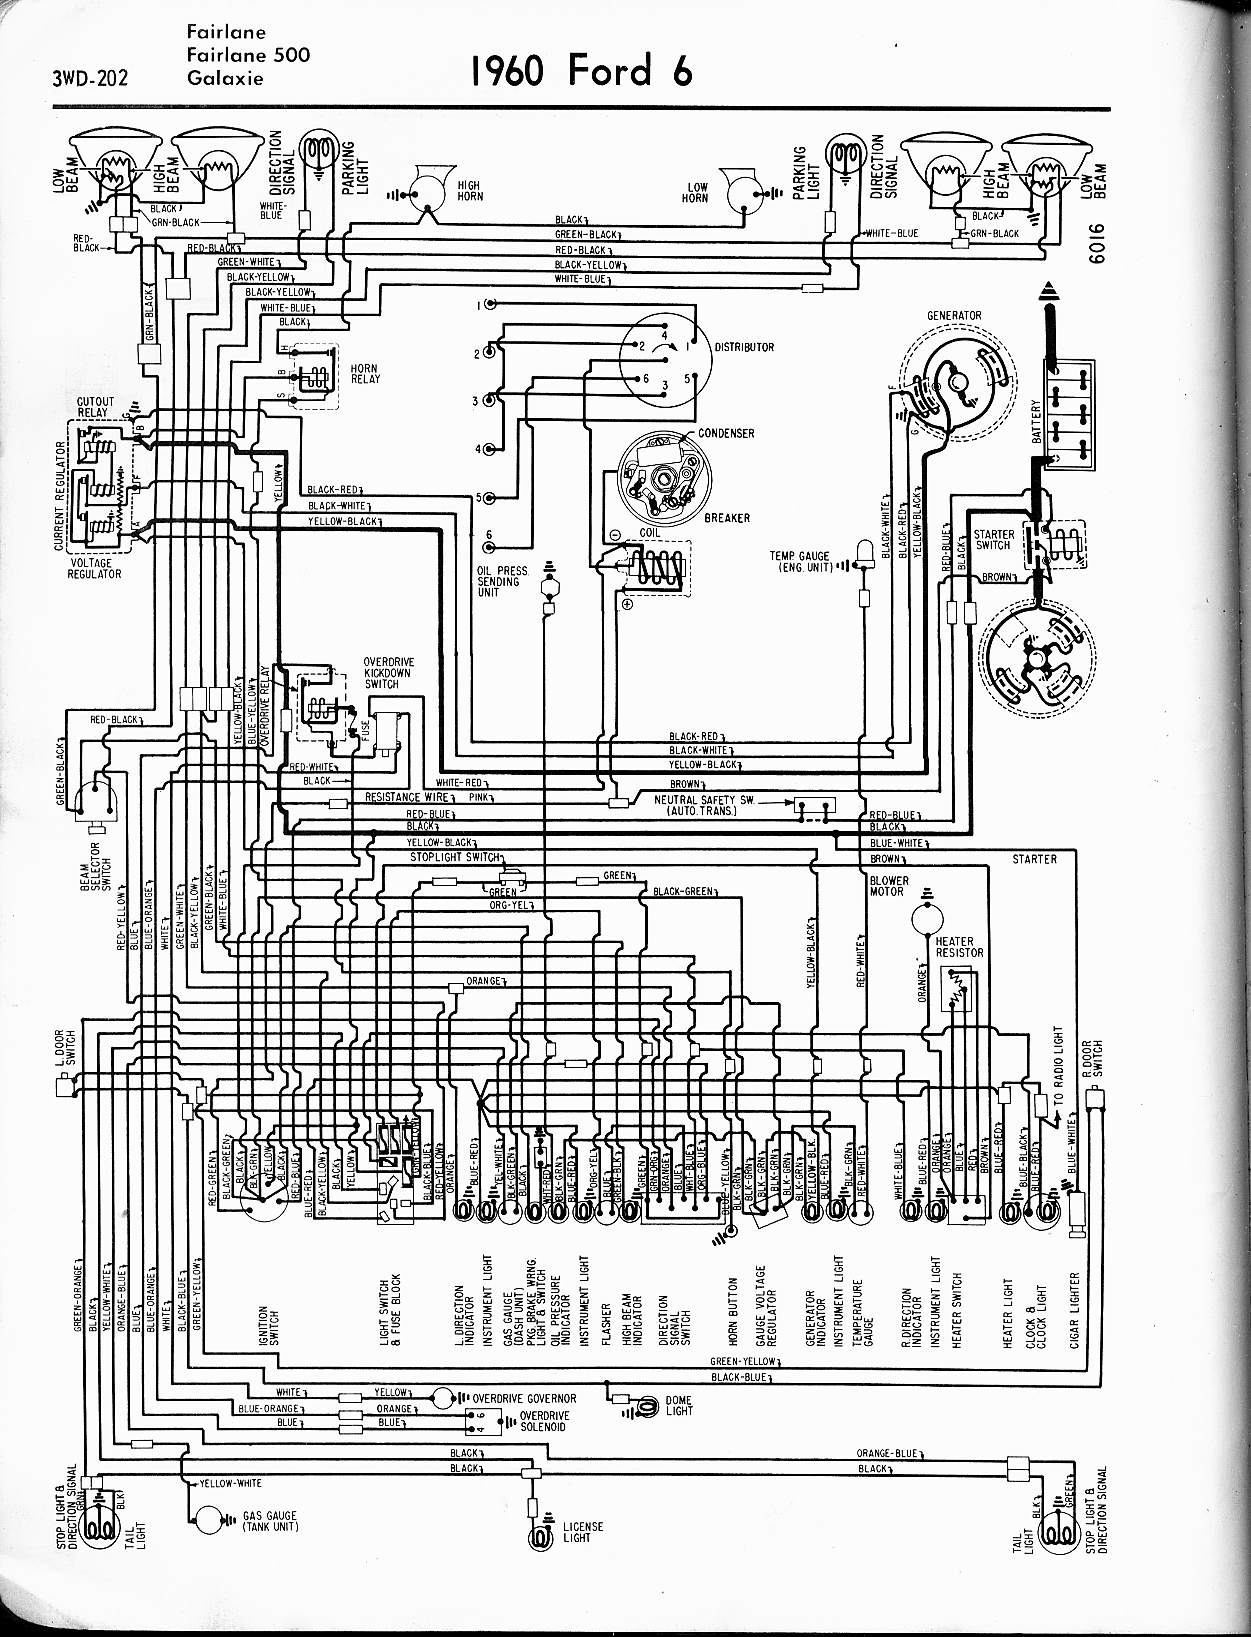 1954 Ford Car Wiring Diagram List Of Schematic Circuit Cigarette Lighter For The 1960 Chevrolet Passenger 57 65 Diagrams Rh Oldcarmanualproject Com